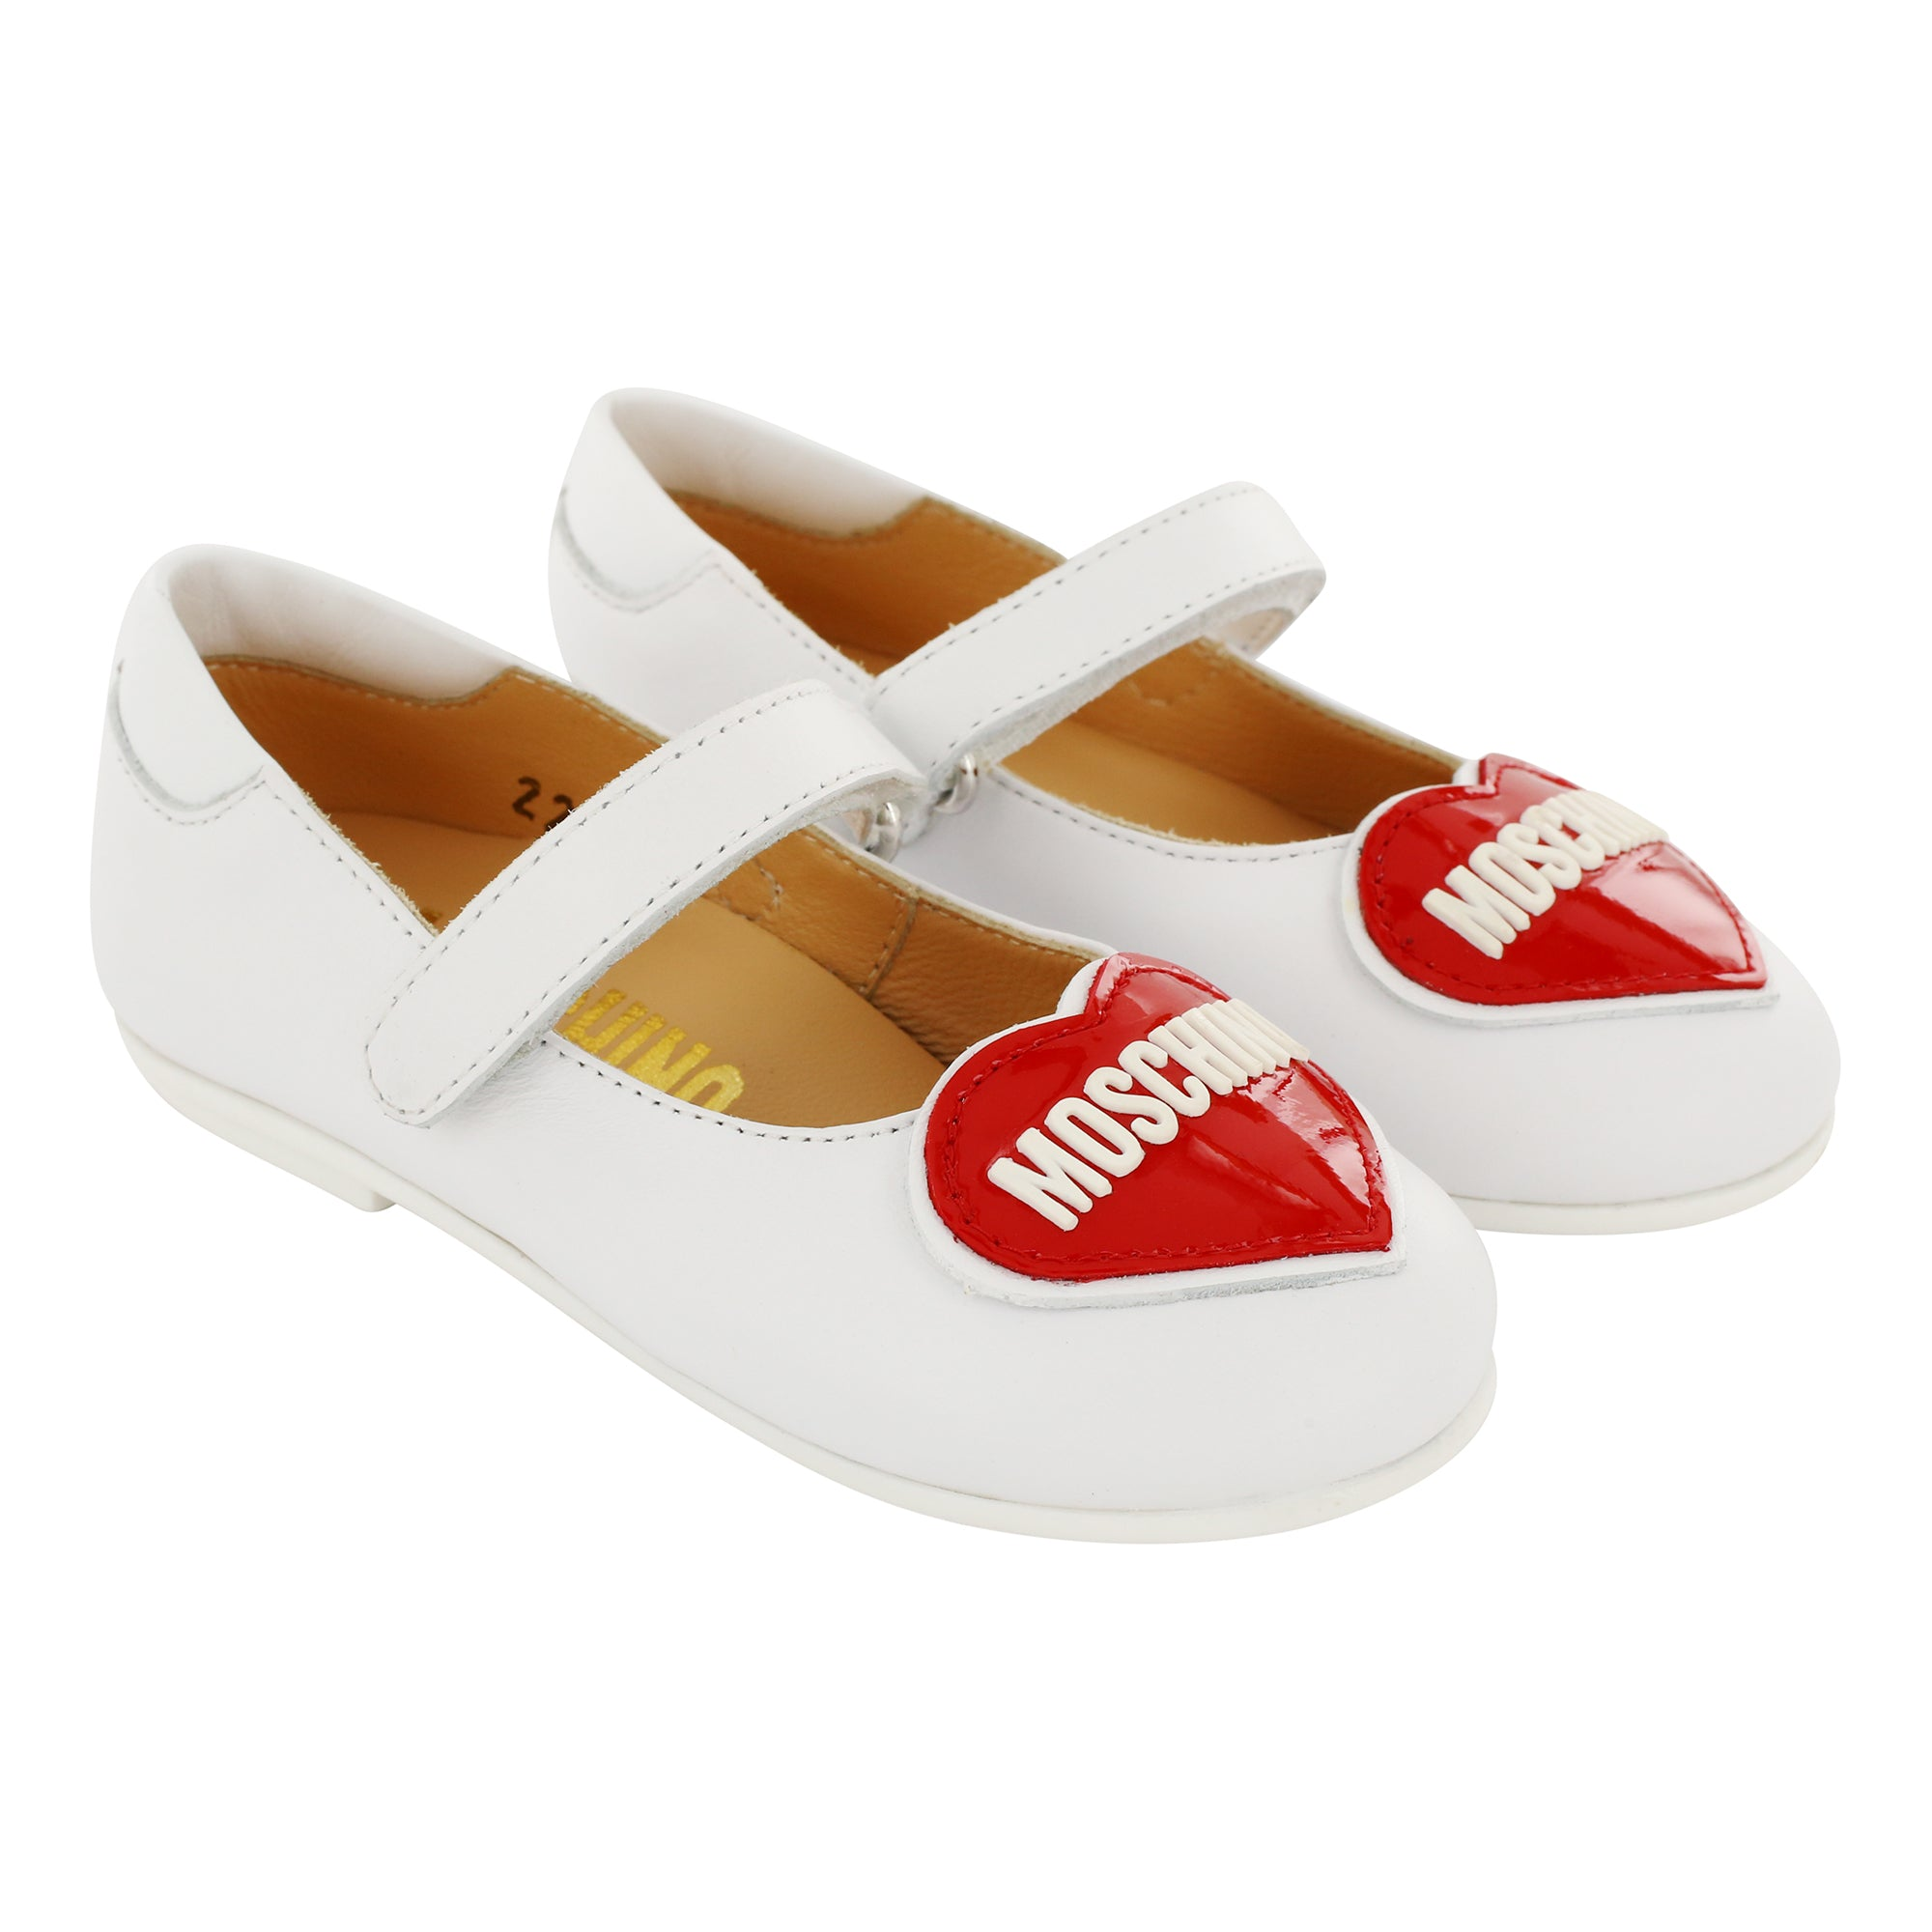 Moschino Leather Patent Red Heart Shoes